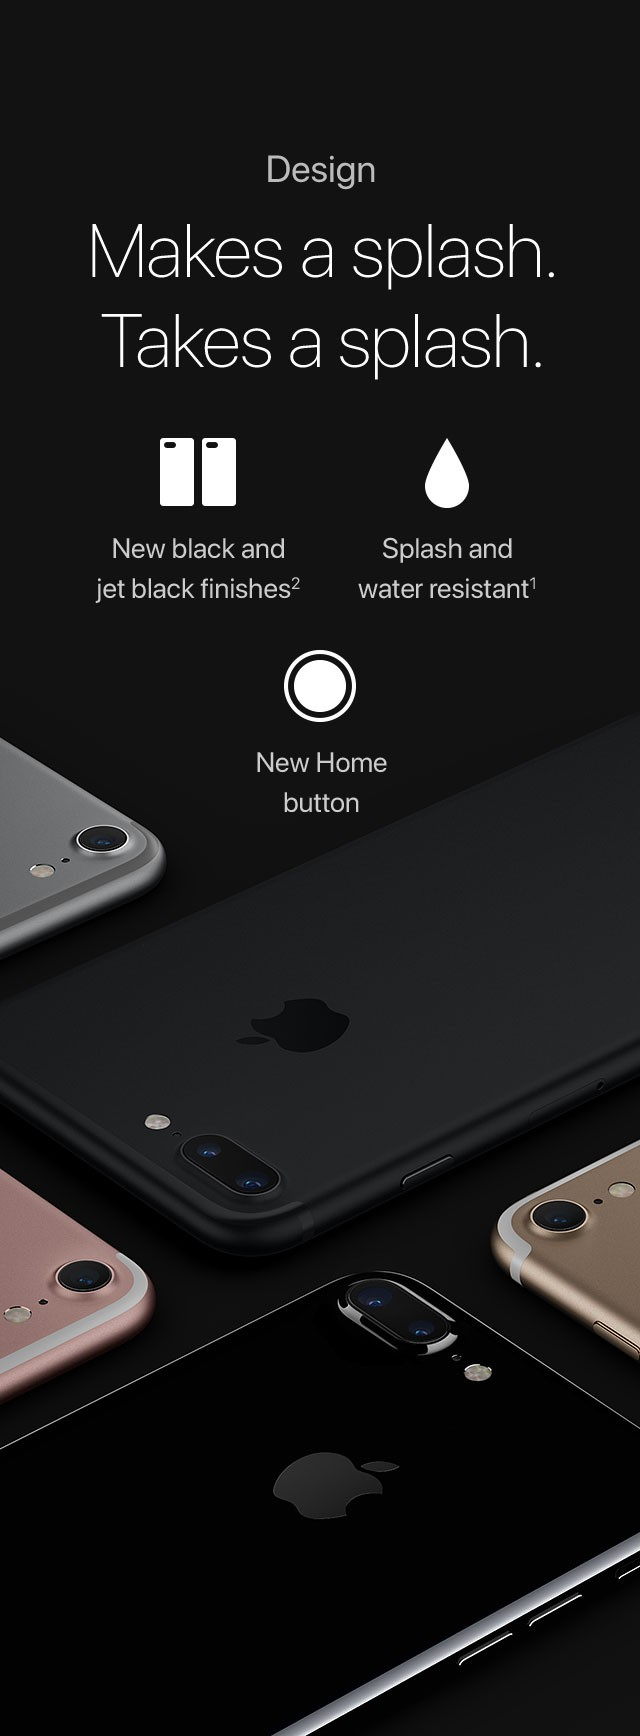 Design Makes a splash. Takesasplash. New black and jet black finishes2/Splash and water resistant1/New Home button